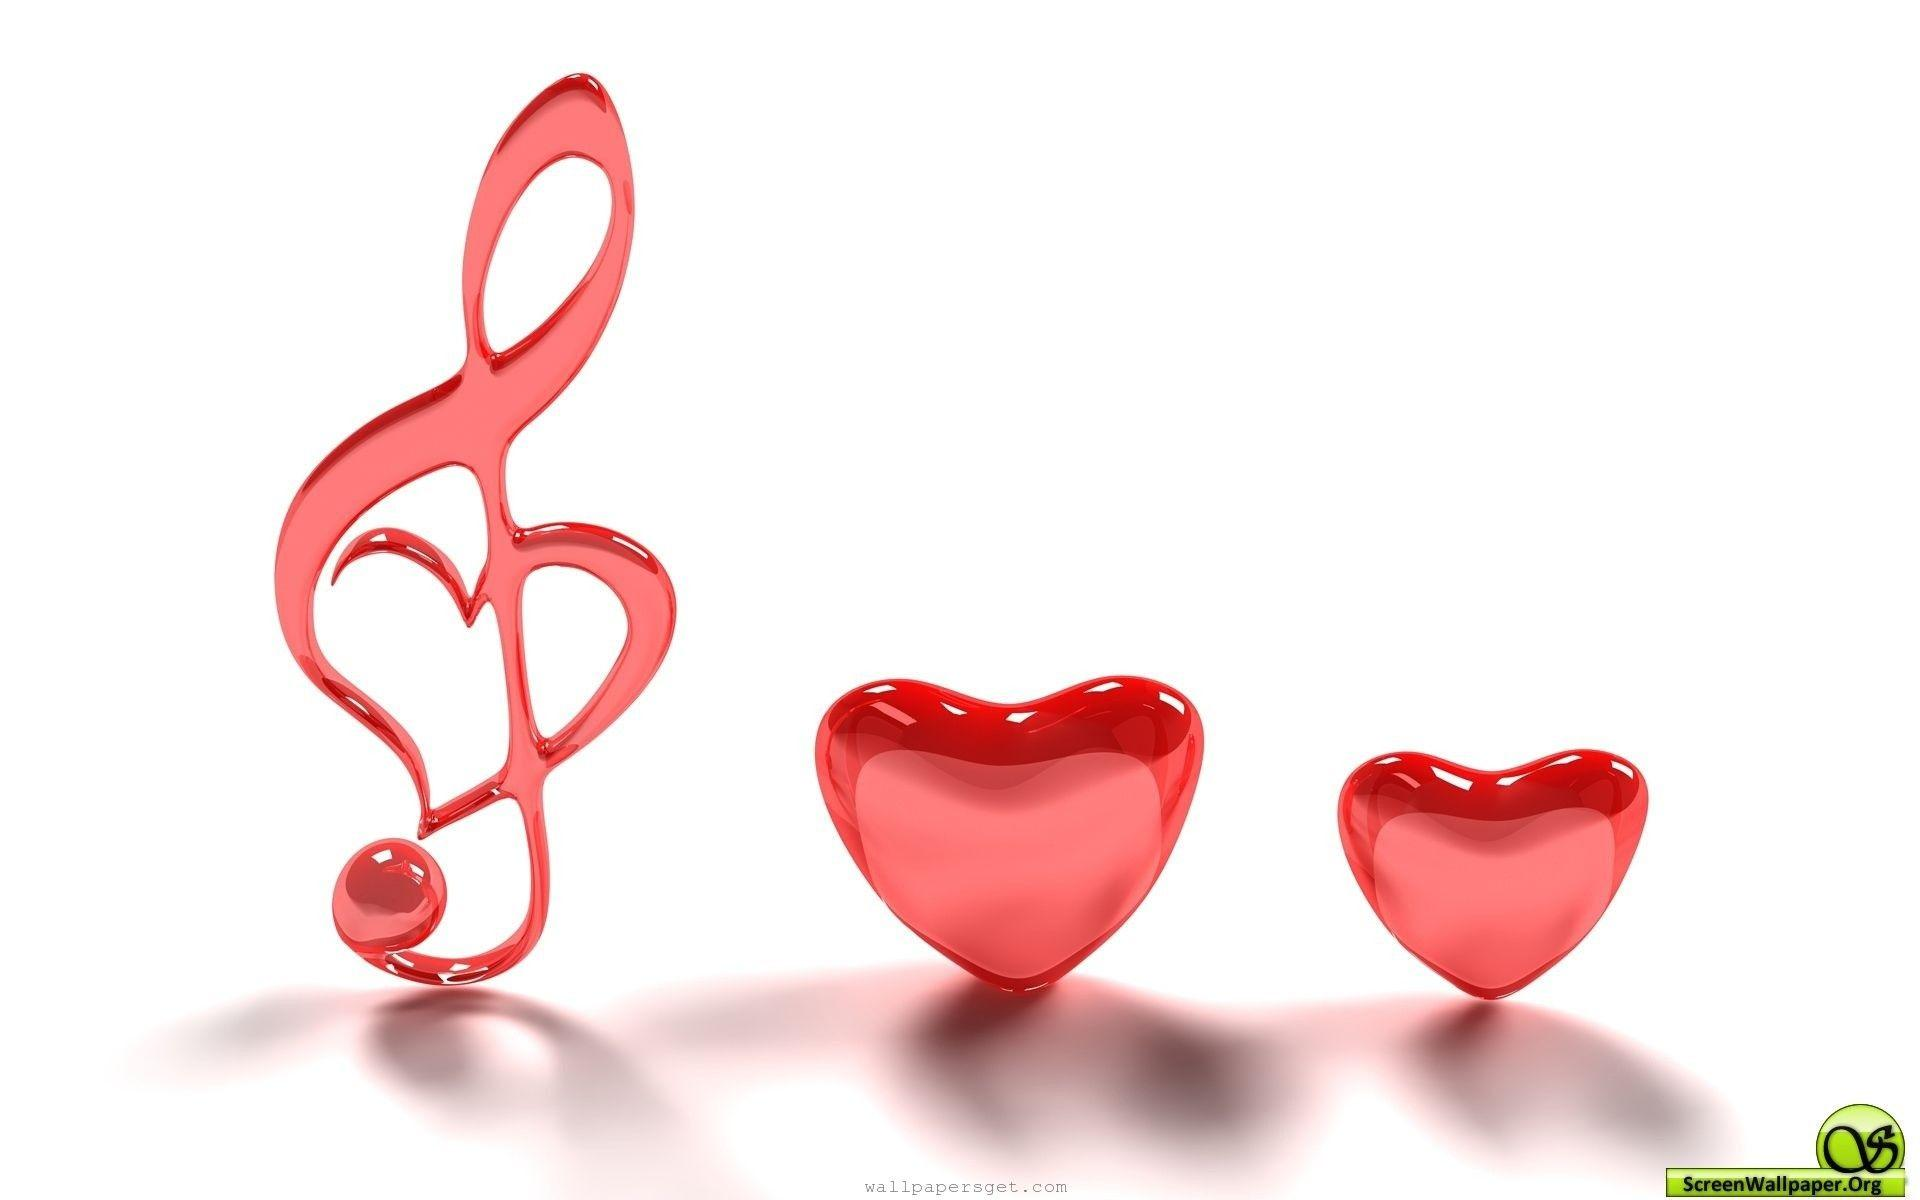 Love Wallpaper 3d Free : Love Wallpapers 3D - Wallpaper cave